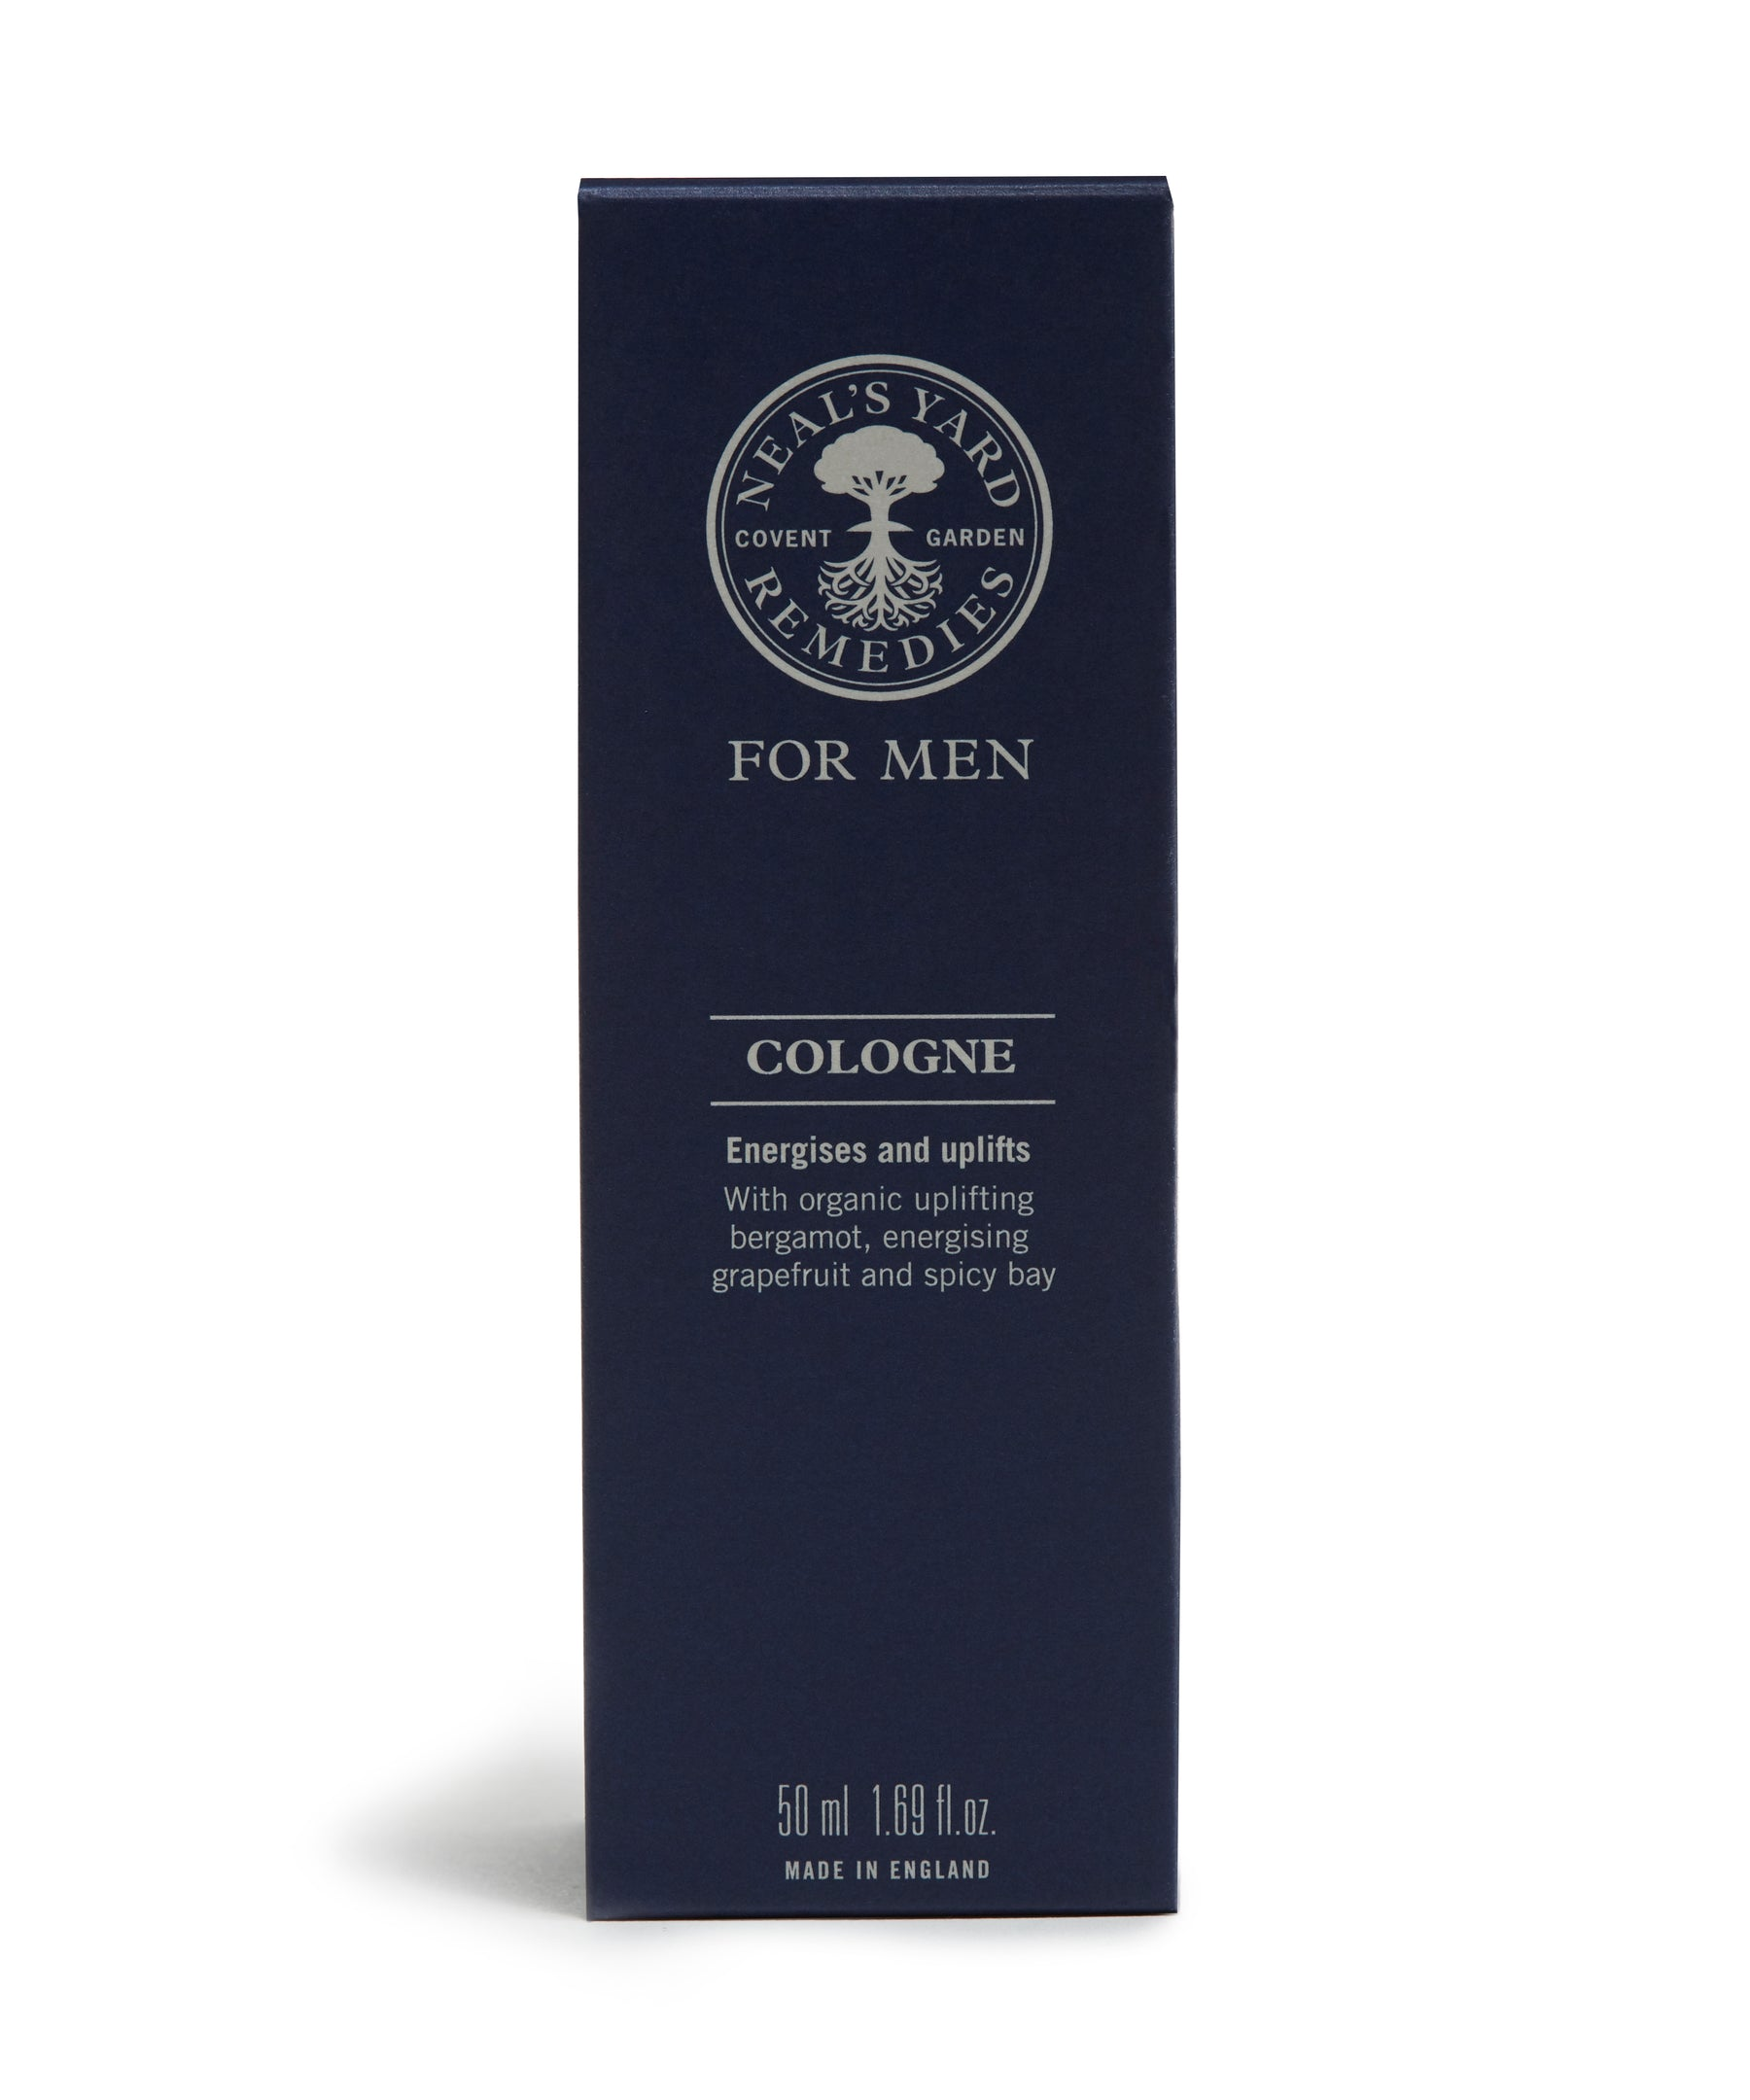 Men's Cologne by Neal's Yard Remedies